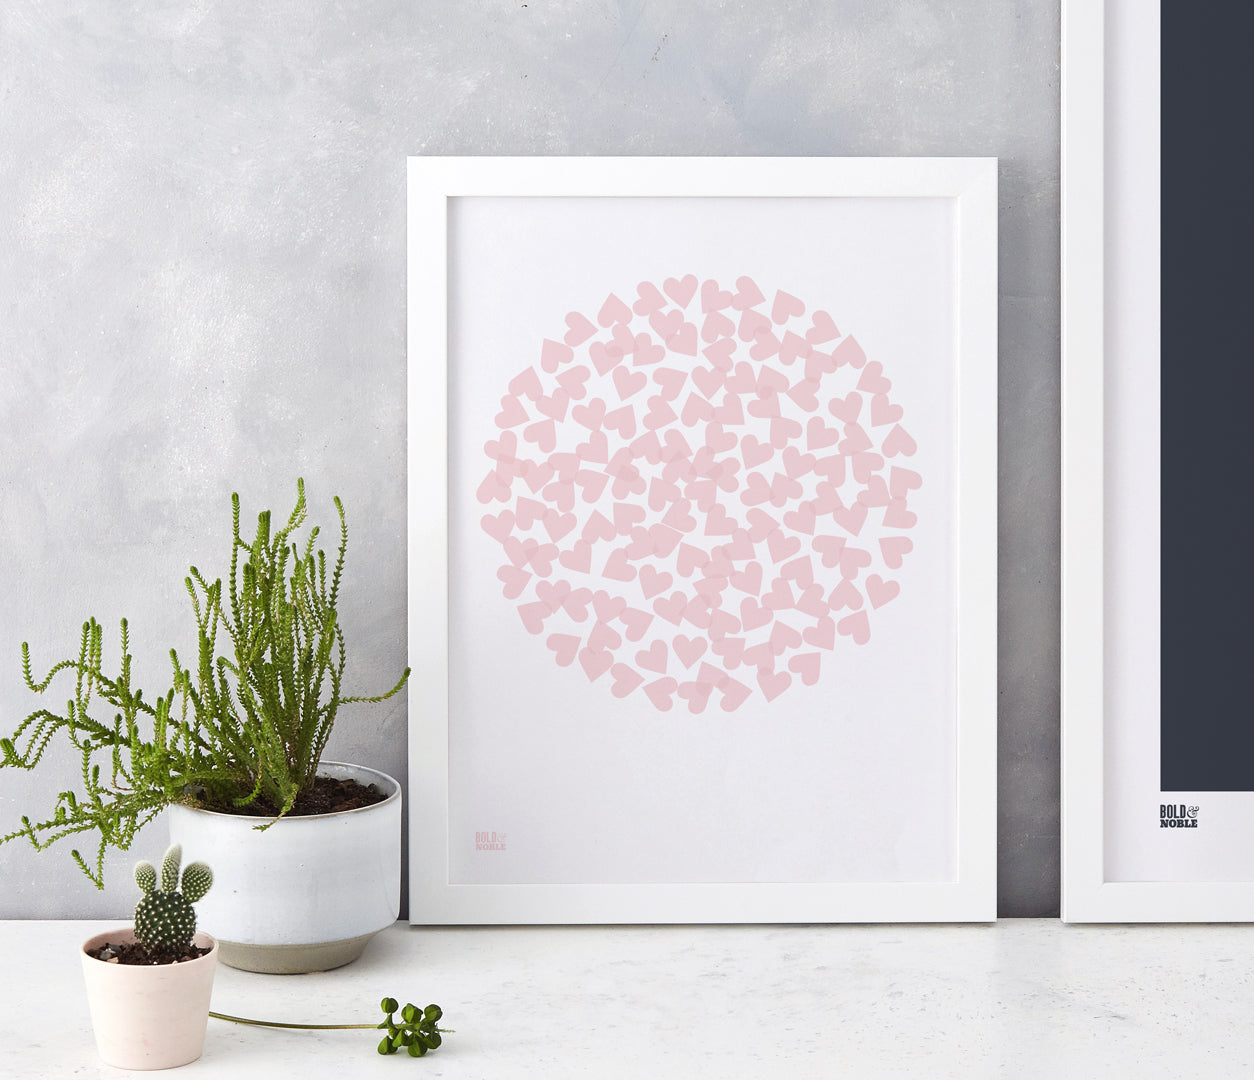 'Confetti Heart' Art Print in Blush Pink